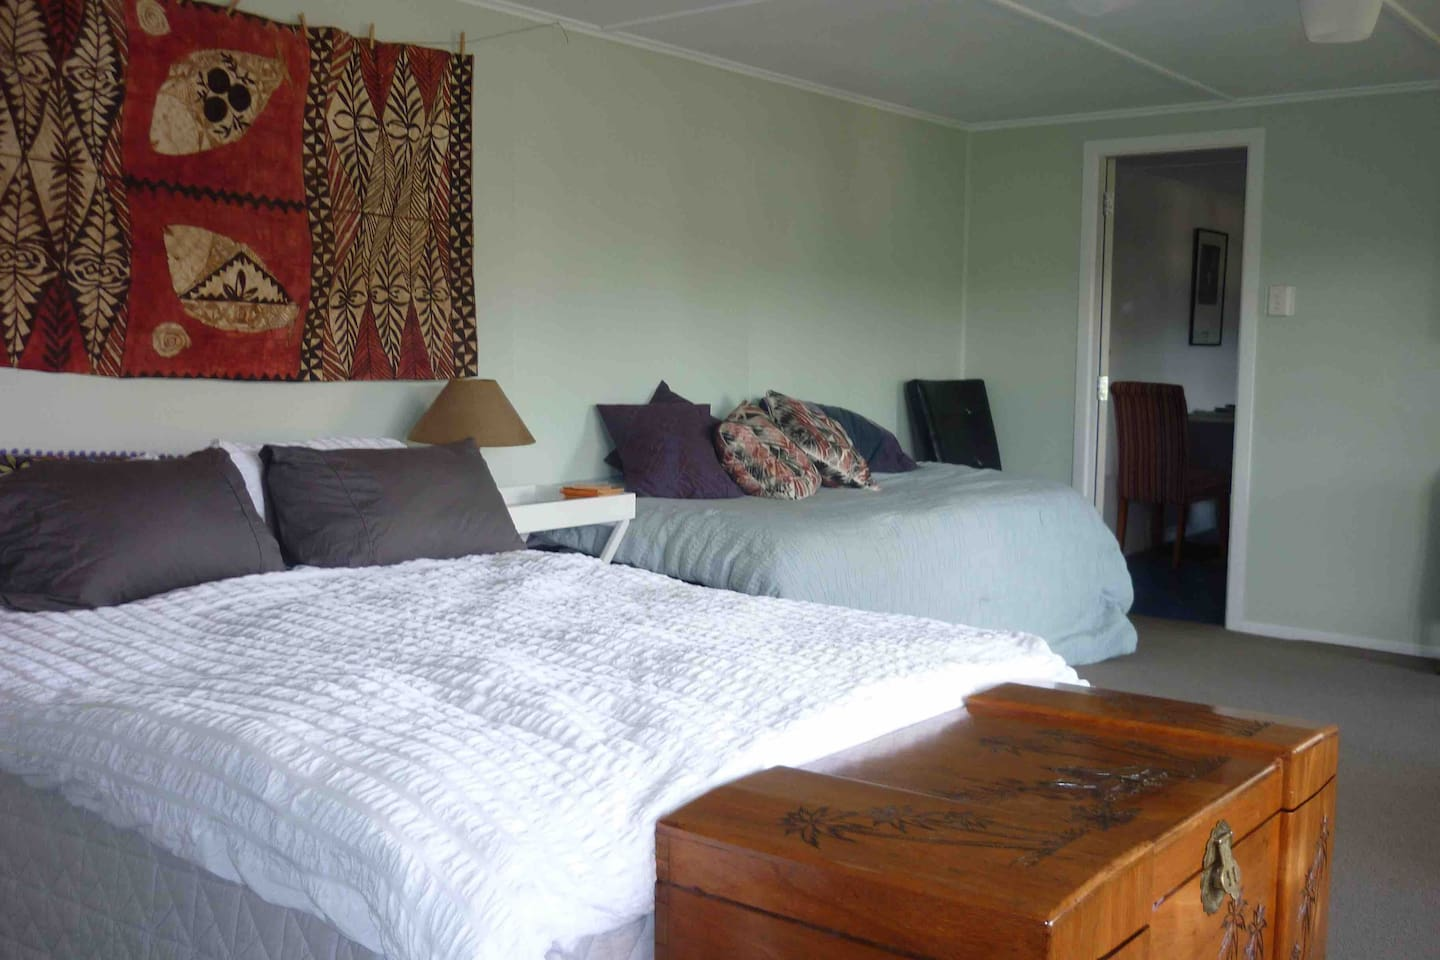 Large room with comfortable queen sized bed, 2 singles beds stacked to create a couch, blanket box.